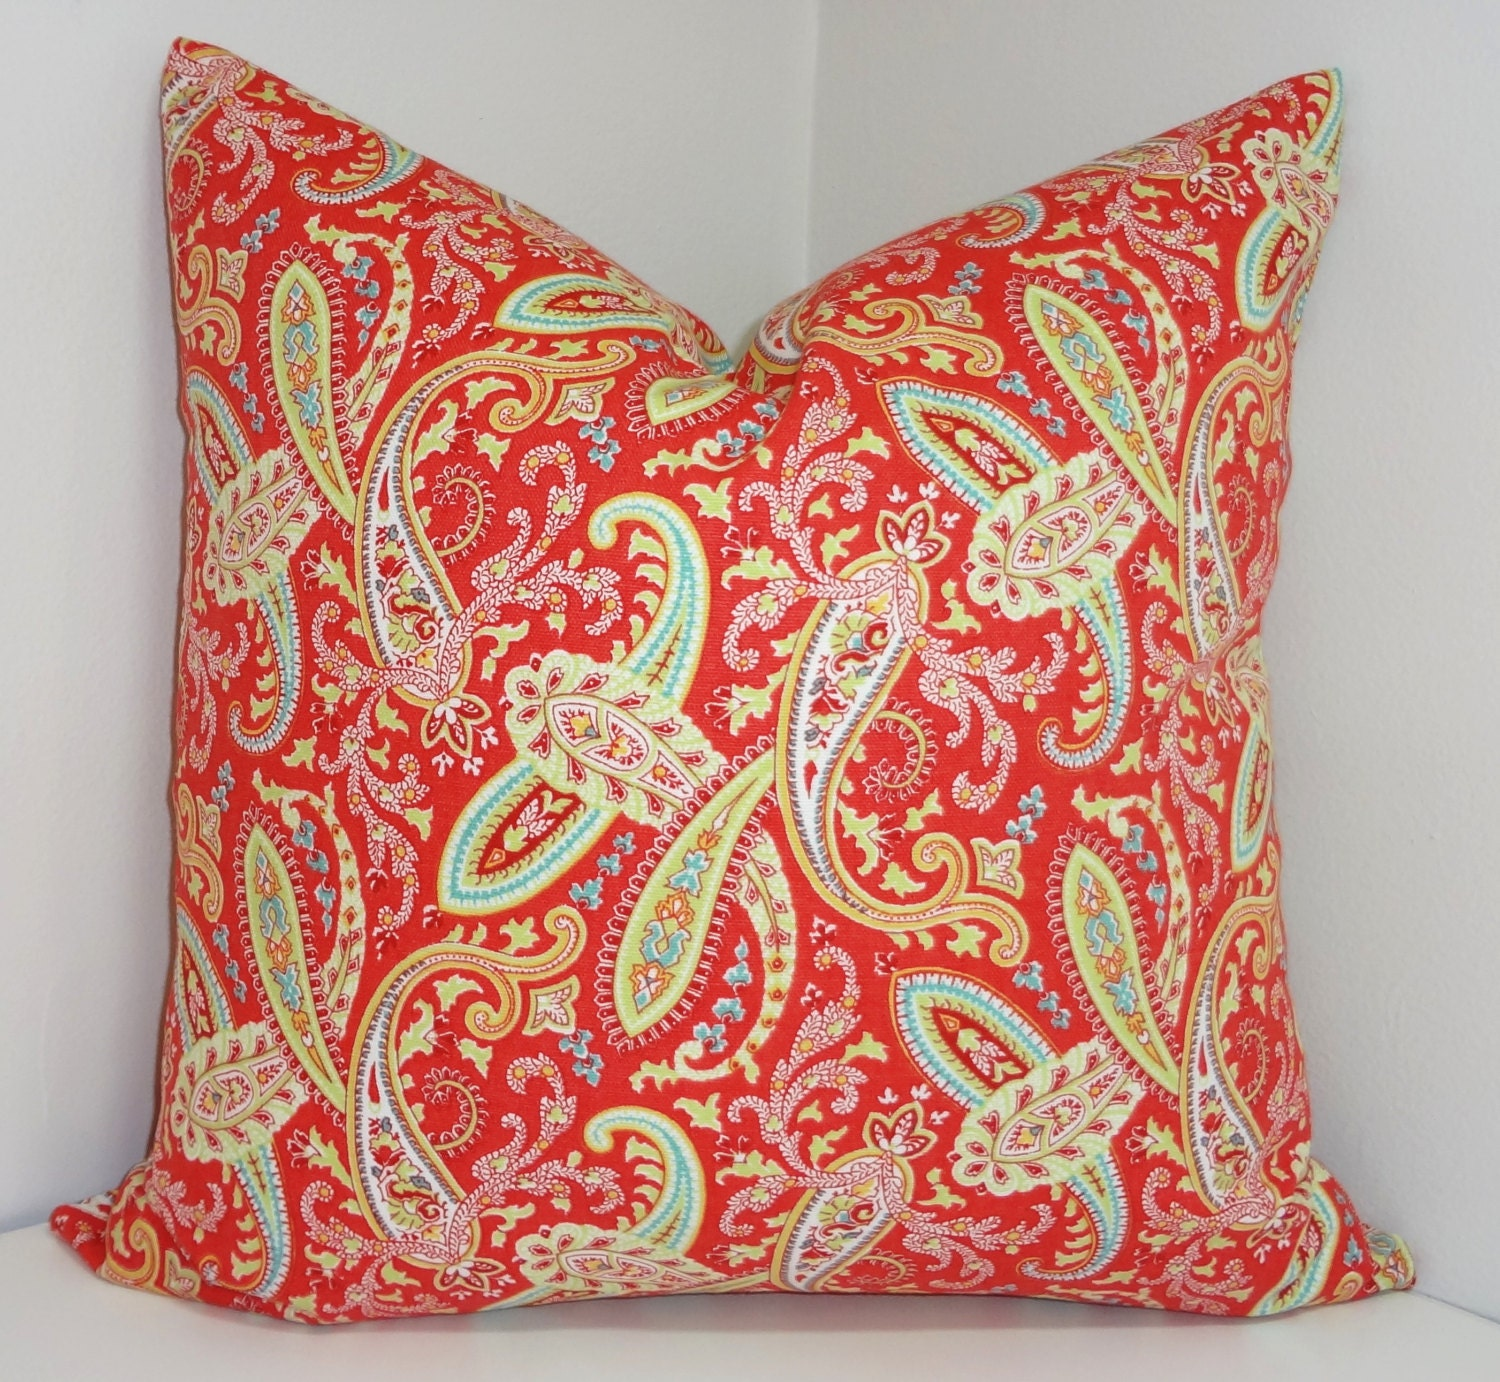 Red Coral Decorative Pillow : Coral Red Yellow Blue Paisley Print Pillow Covers Decorative